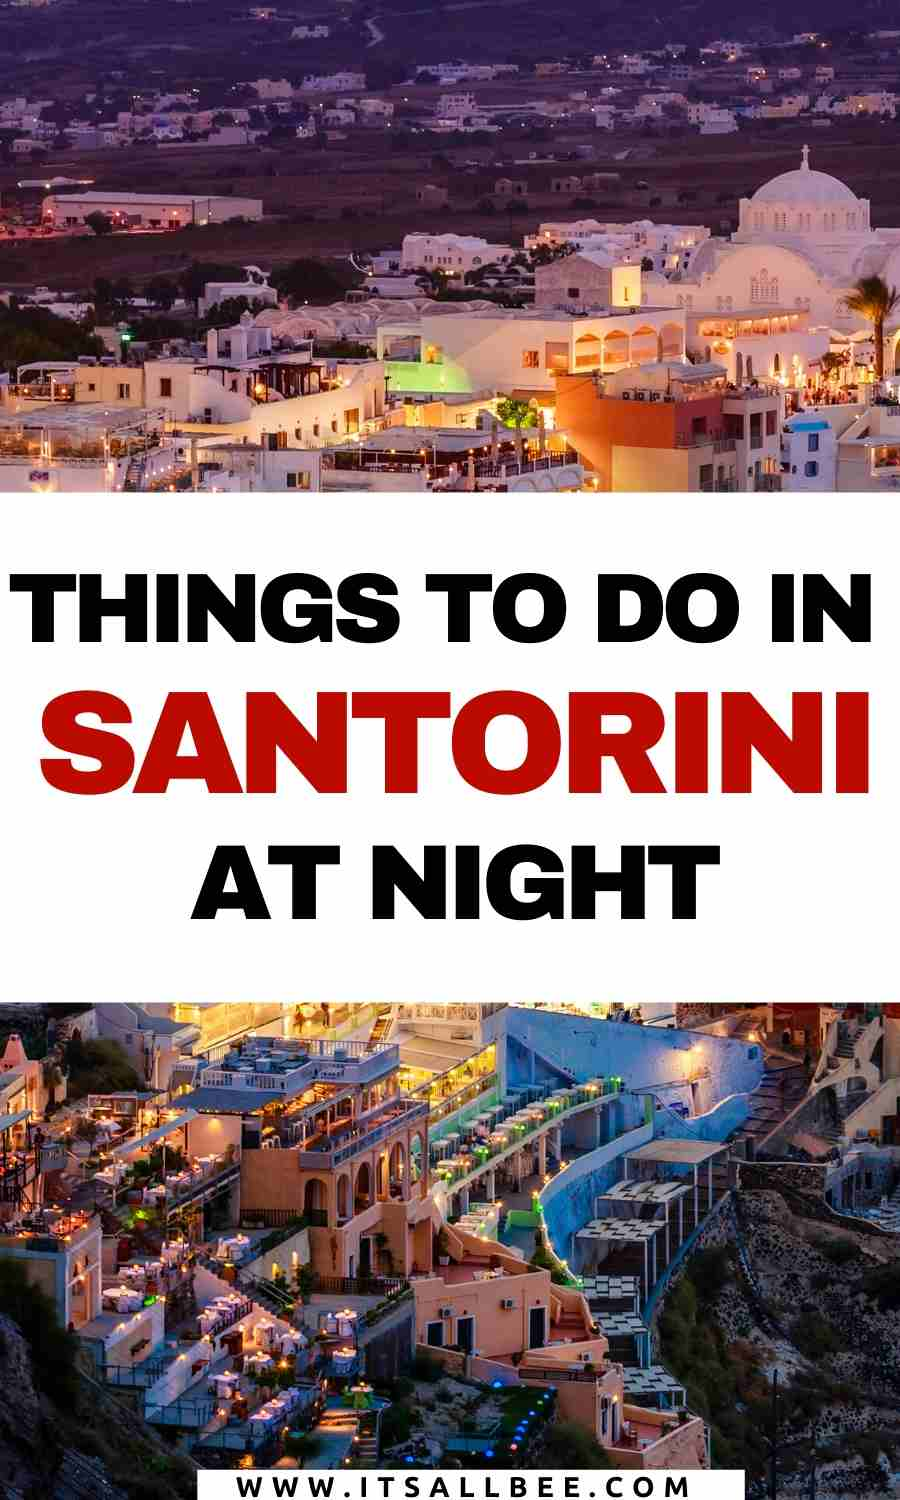 santorini greece nightlife | santorini night clubs